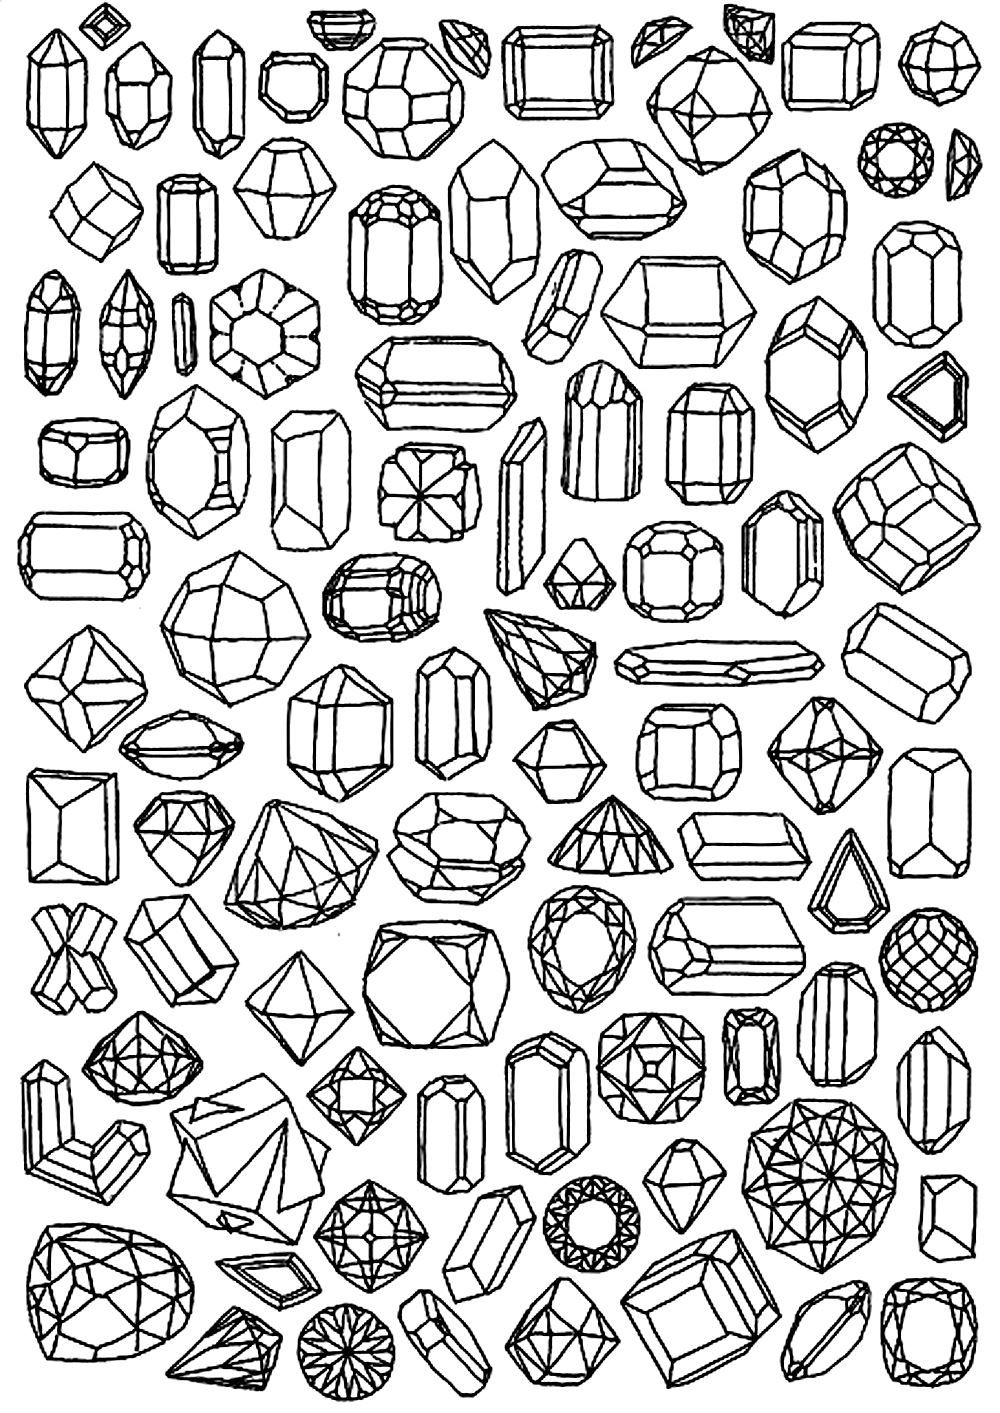 Zen Anti Stress To Print Diamonds Image With Diamond Jewelfrom The Gallery Zen Anti Stress Coloring Pages Drawings Sketch Book